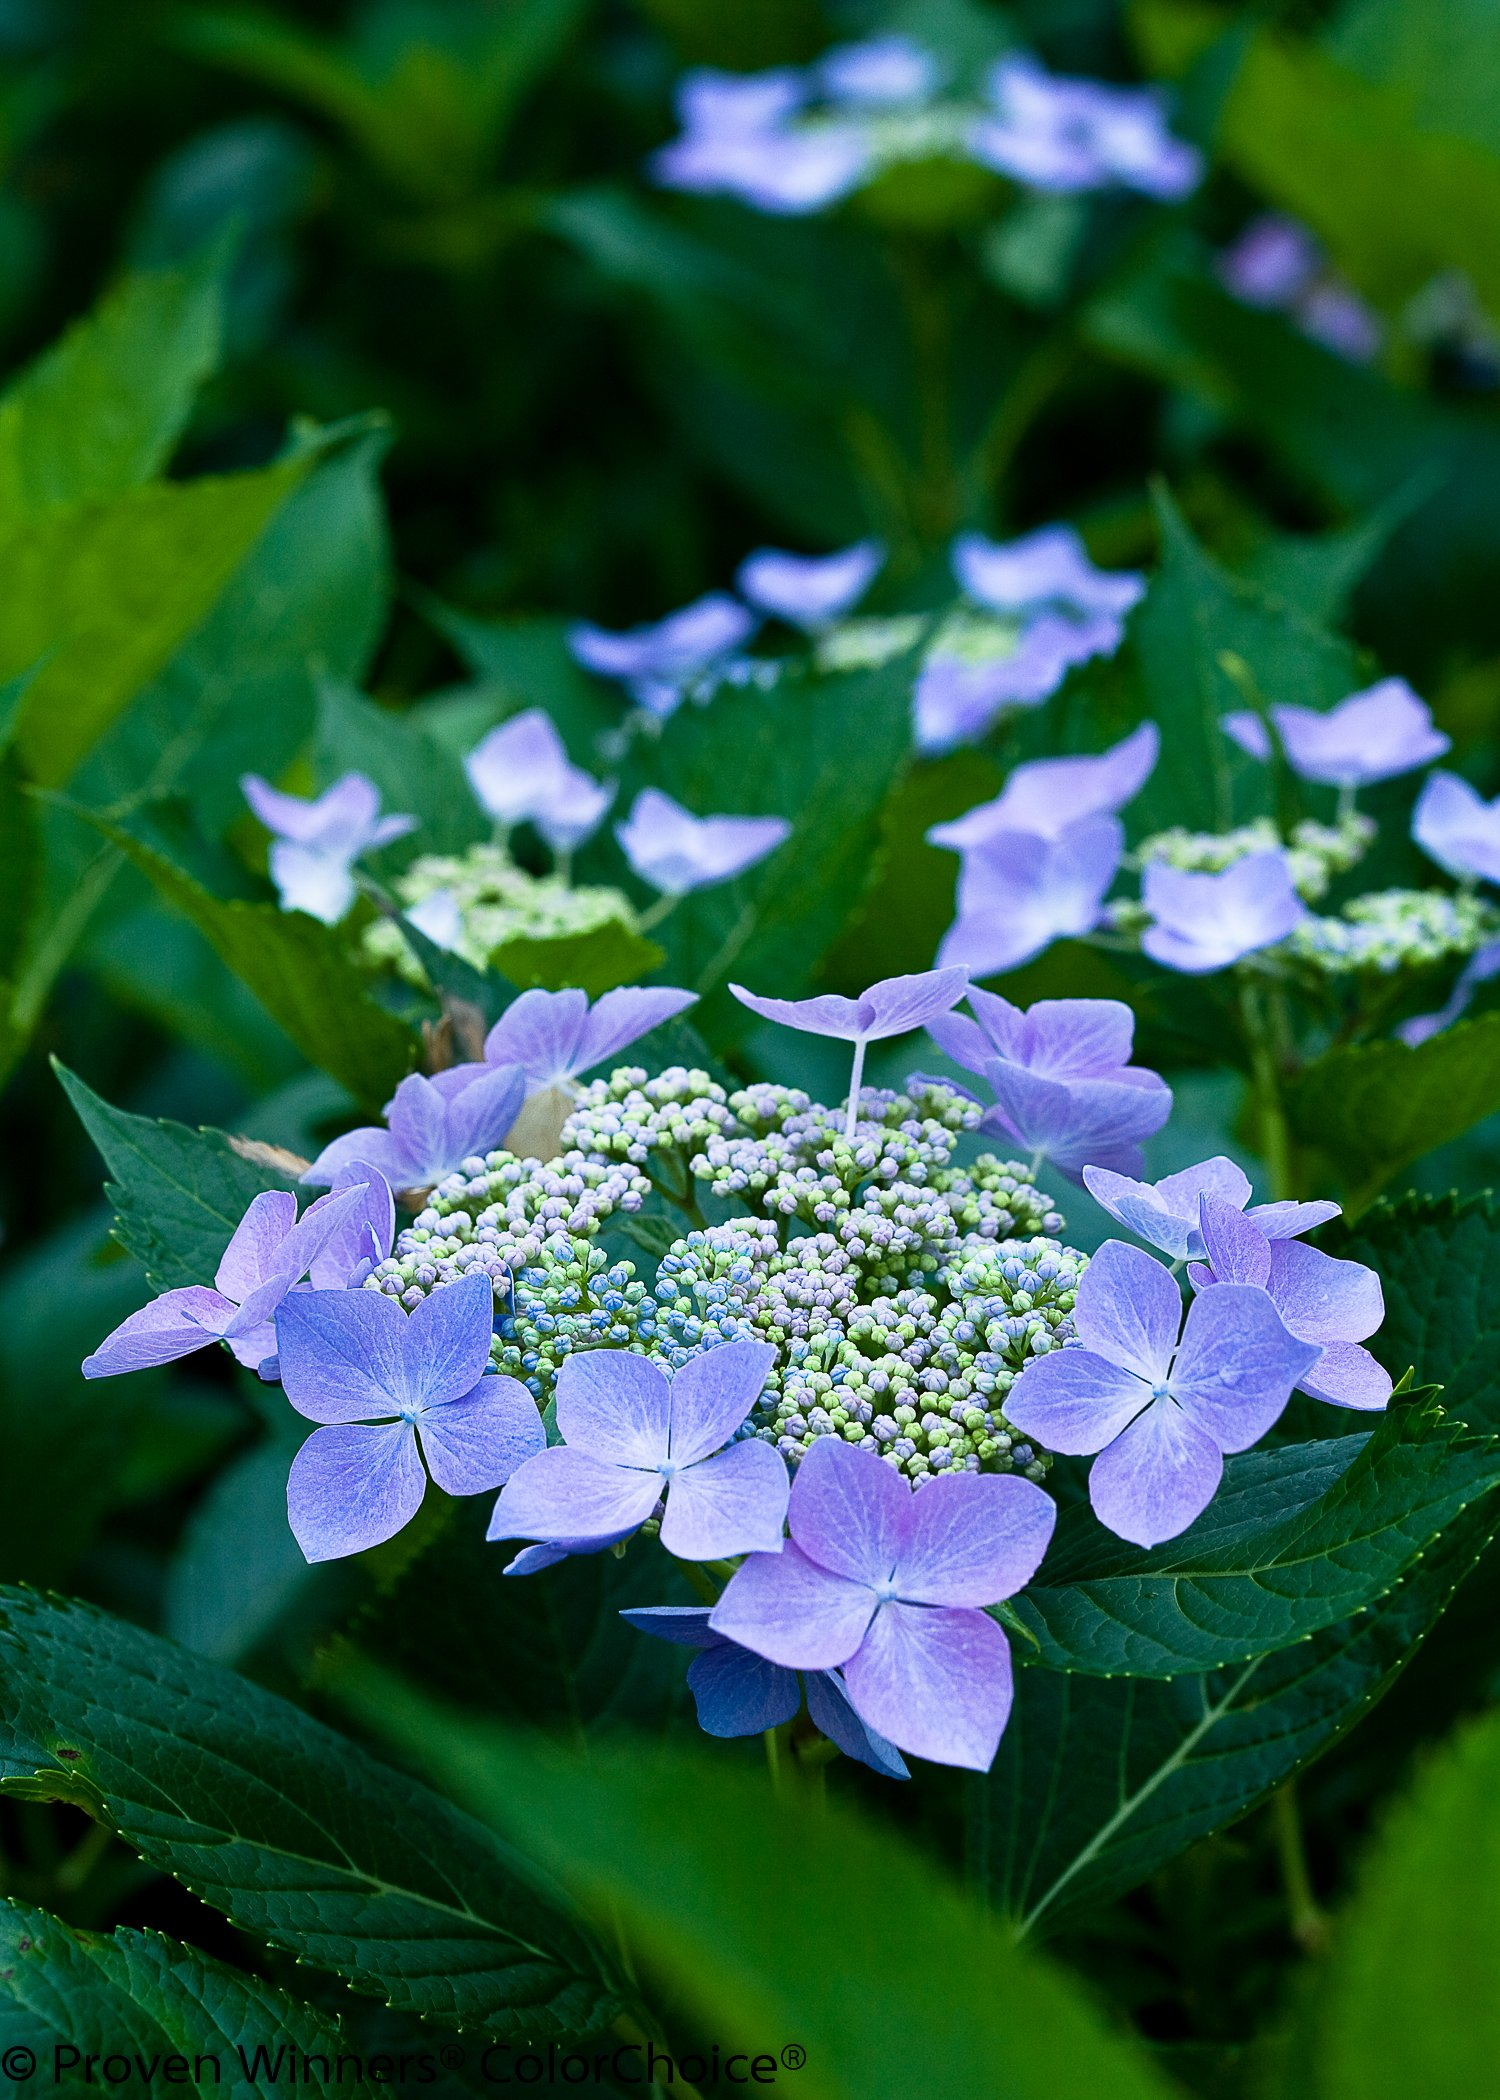 1 Gal. Let's Dance Starlight Bigleaf Hydrangea (Macrophylla) Live Shrub, Blue or Pink Flowers by Proven Winners (Image #2)